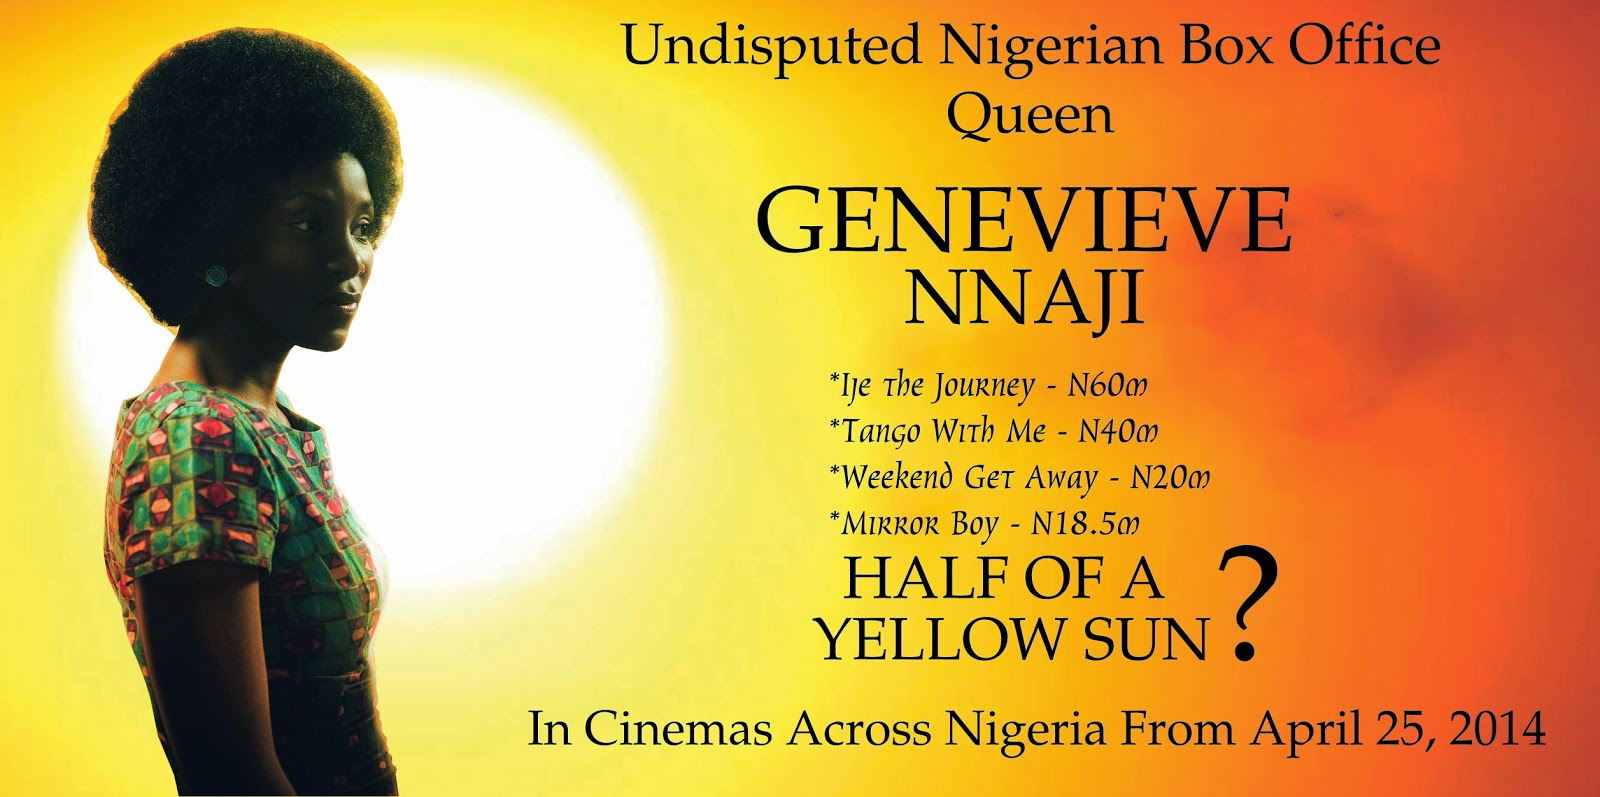 half of a yellow sun movie premiere nigeria